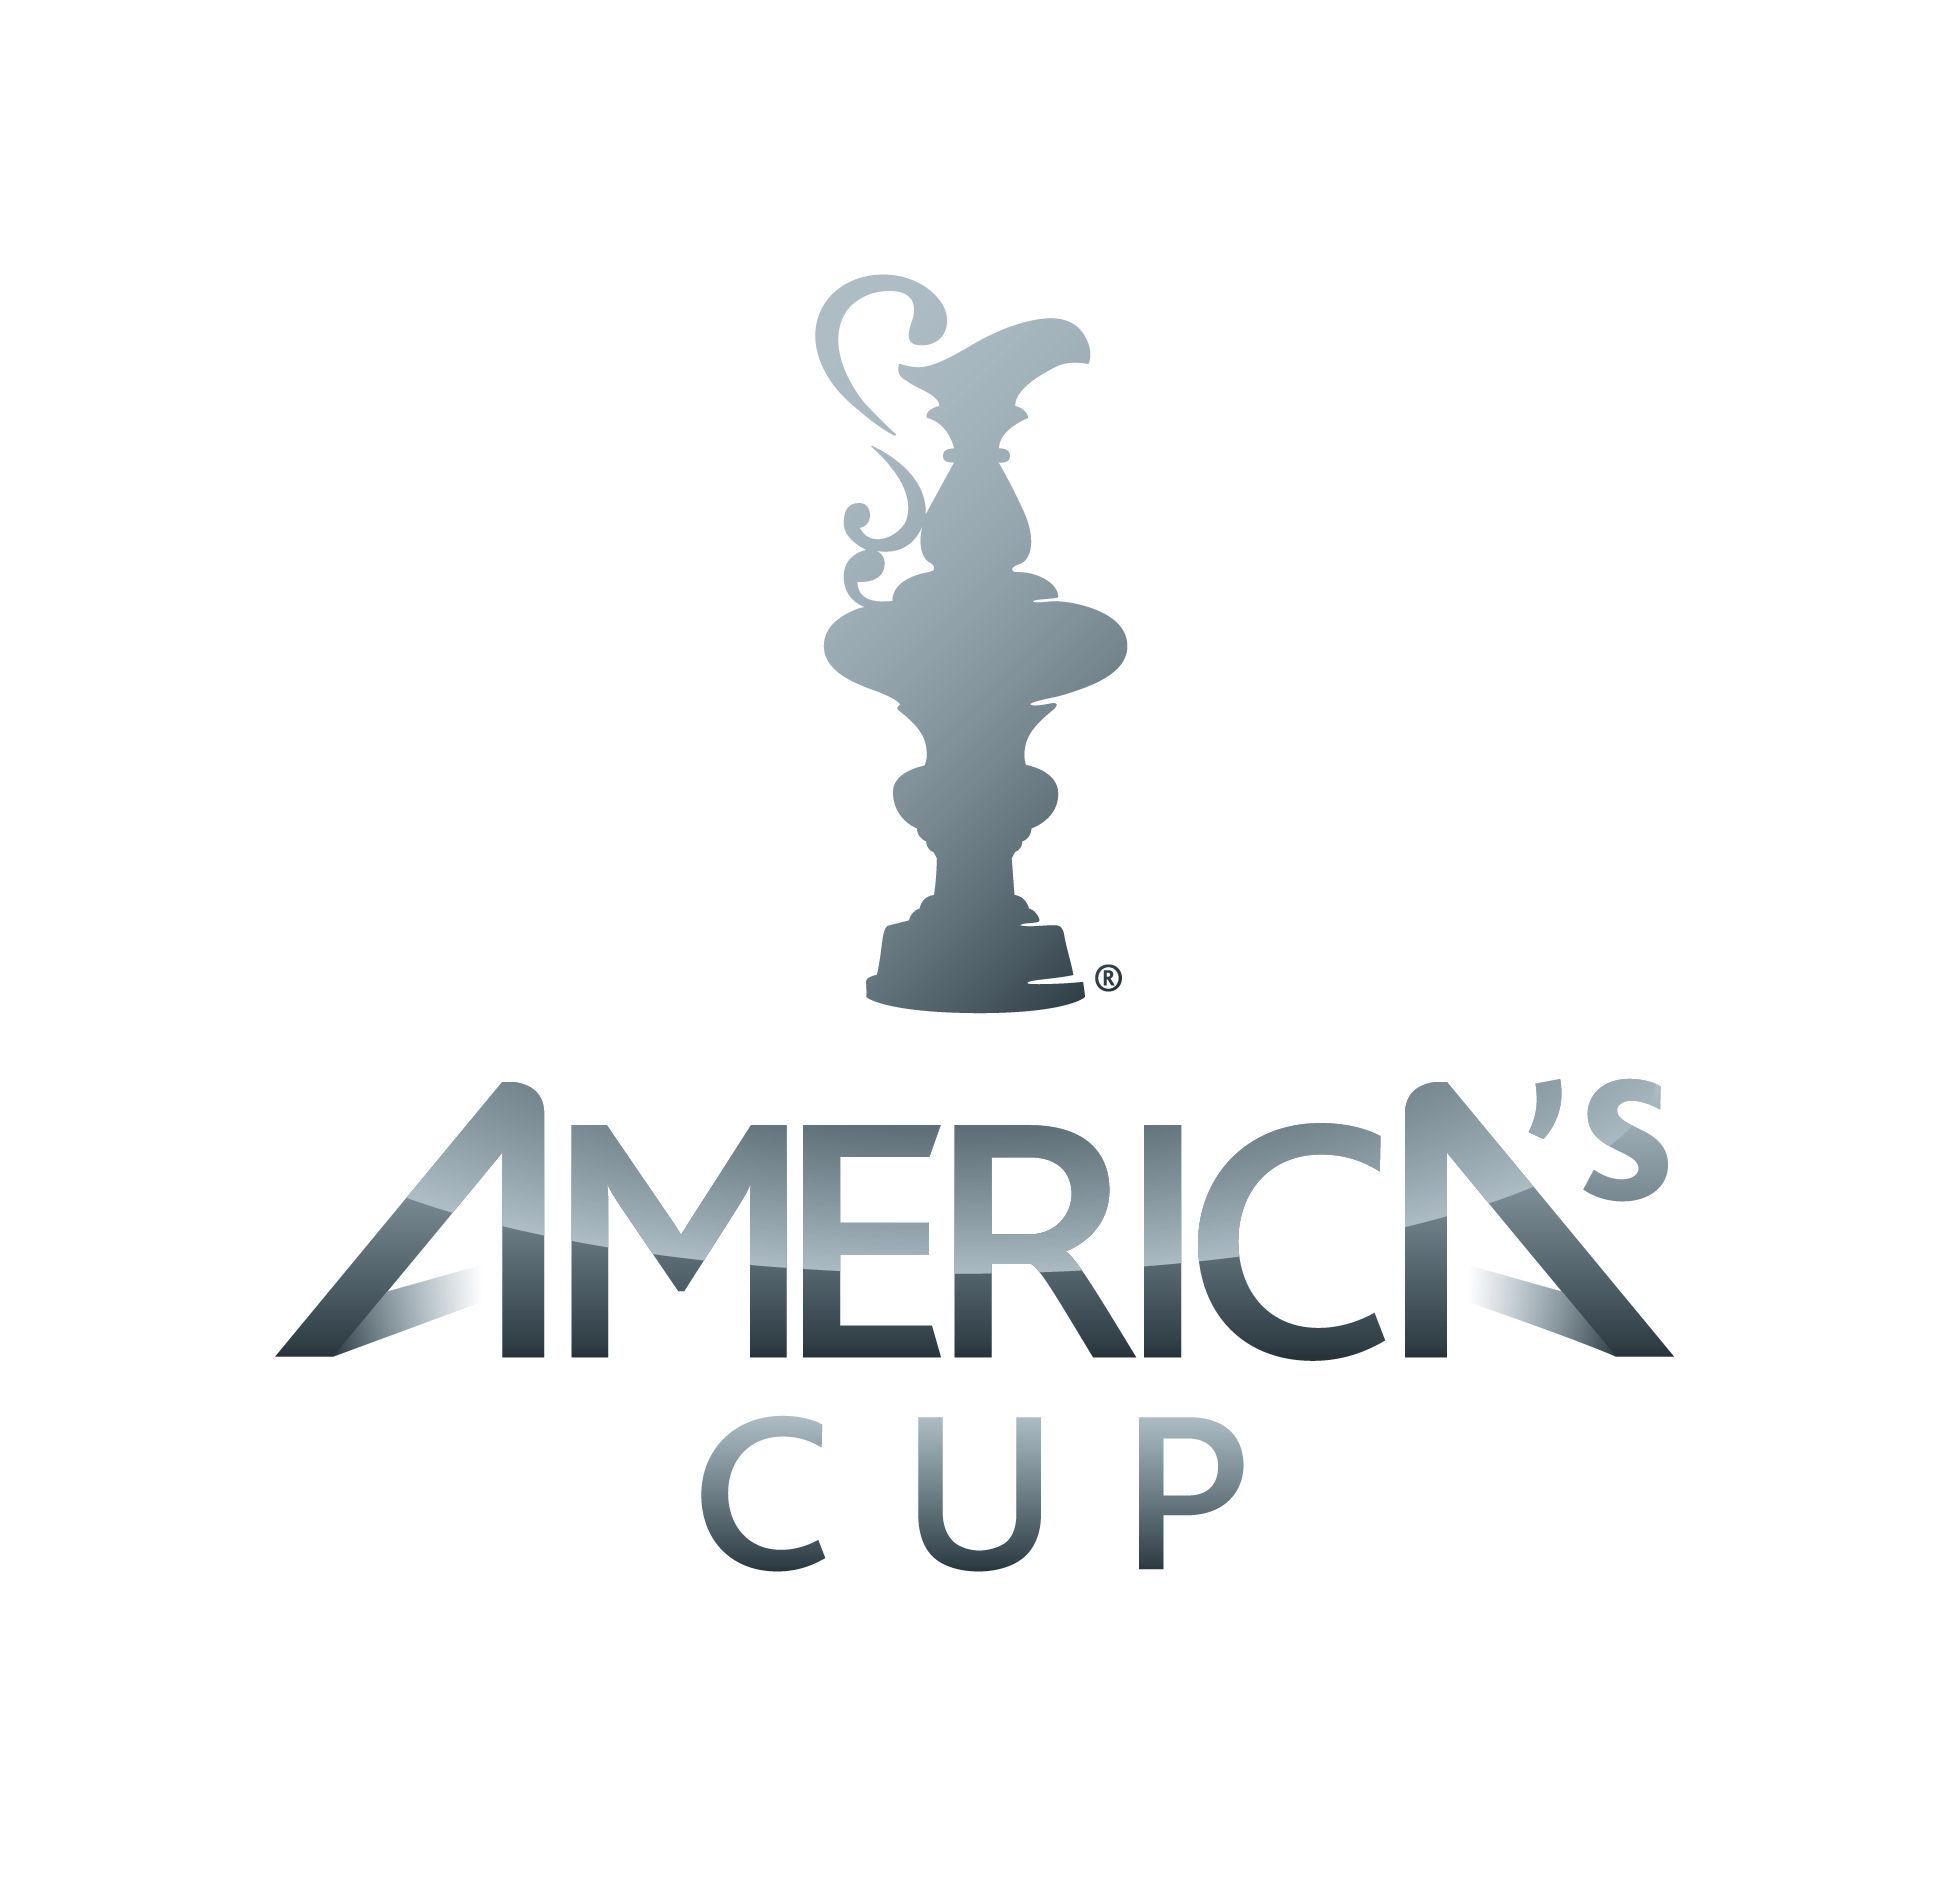 The America's Cup